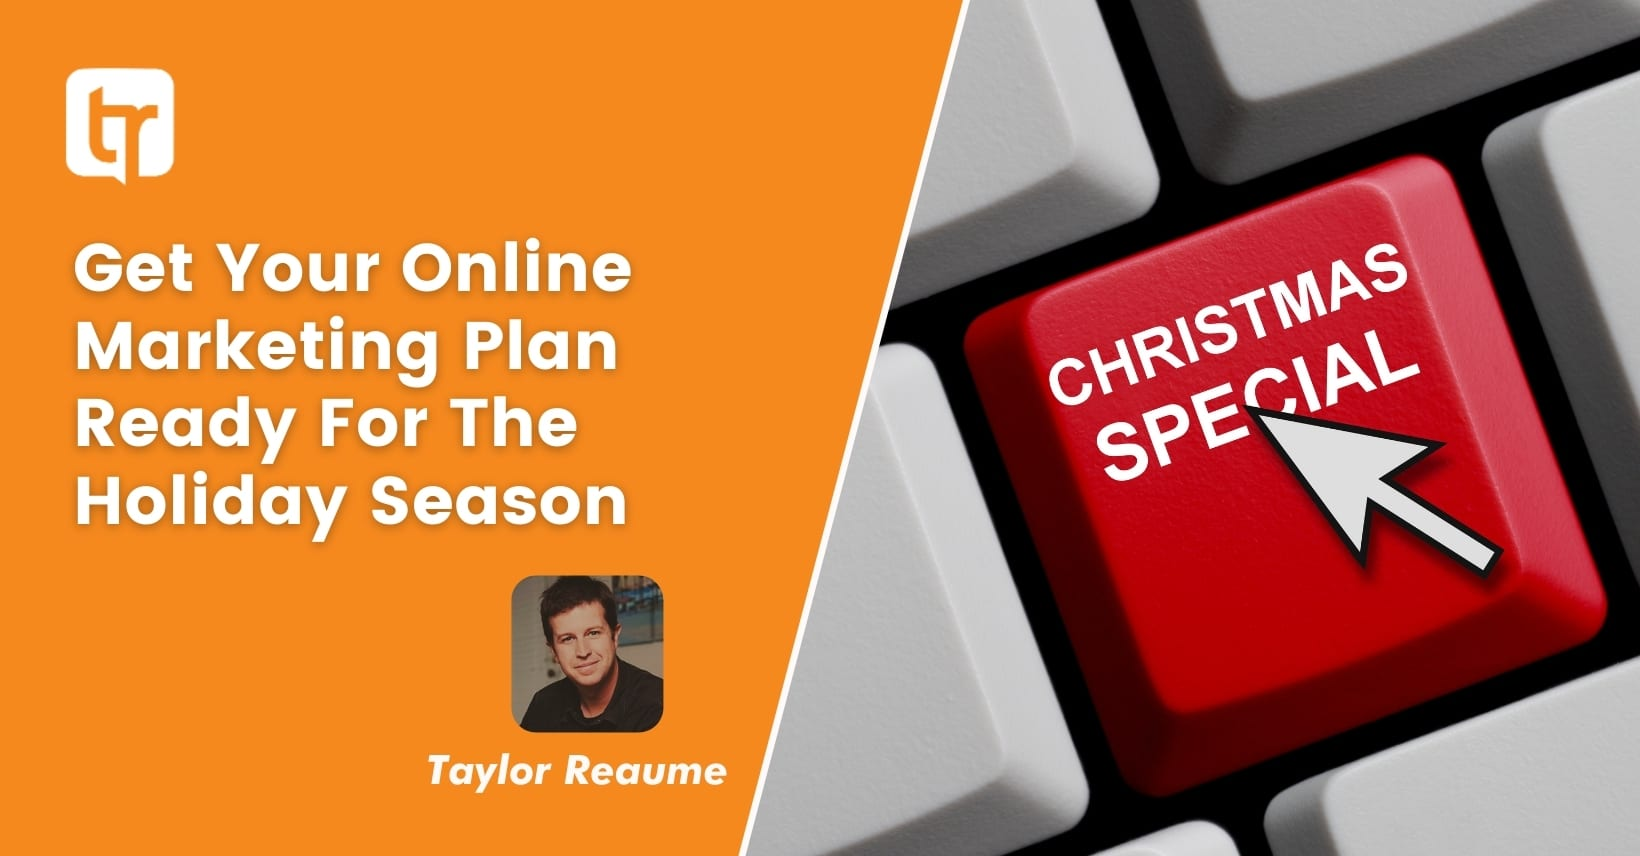 Get Your Online Marketing Plan Ready For The Holidays